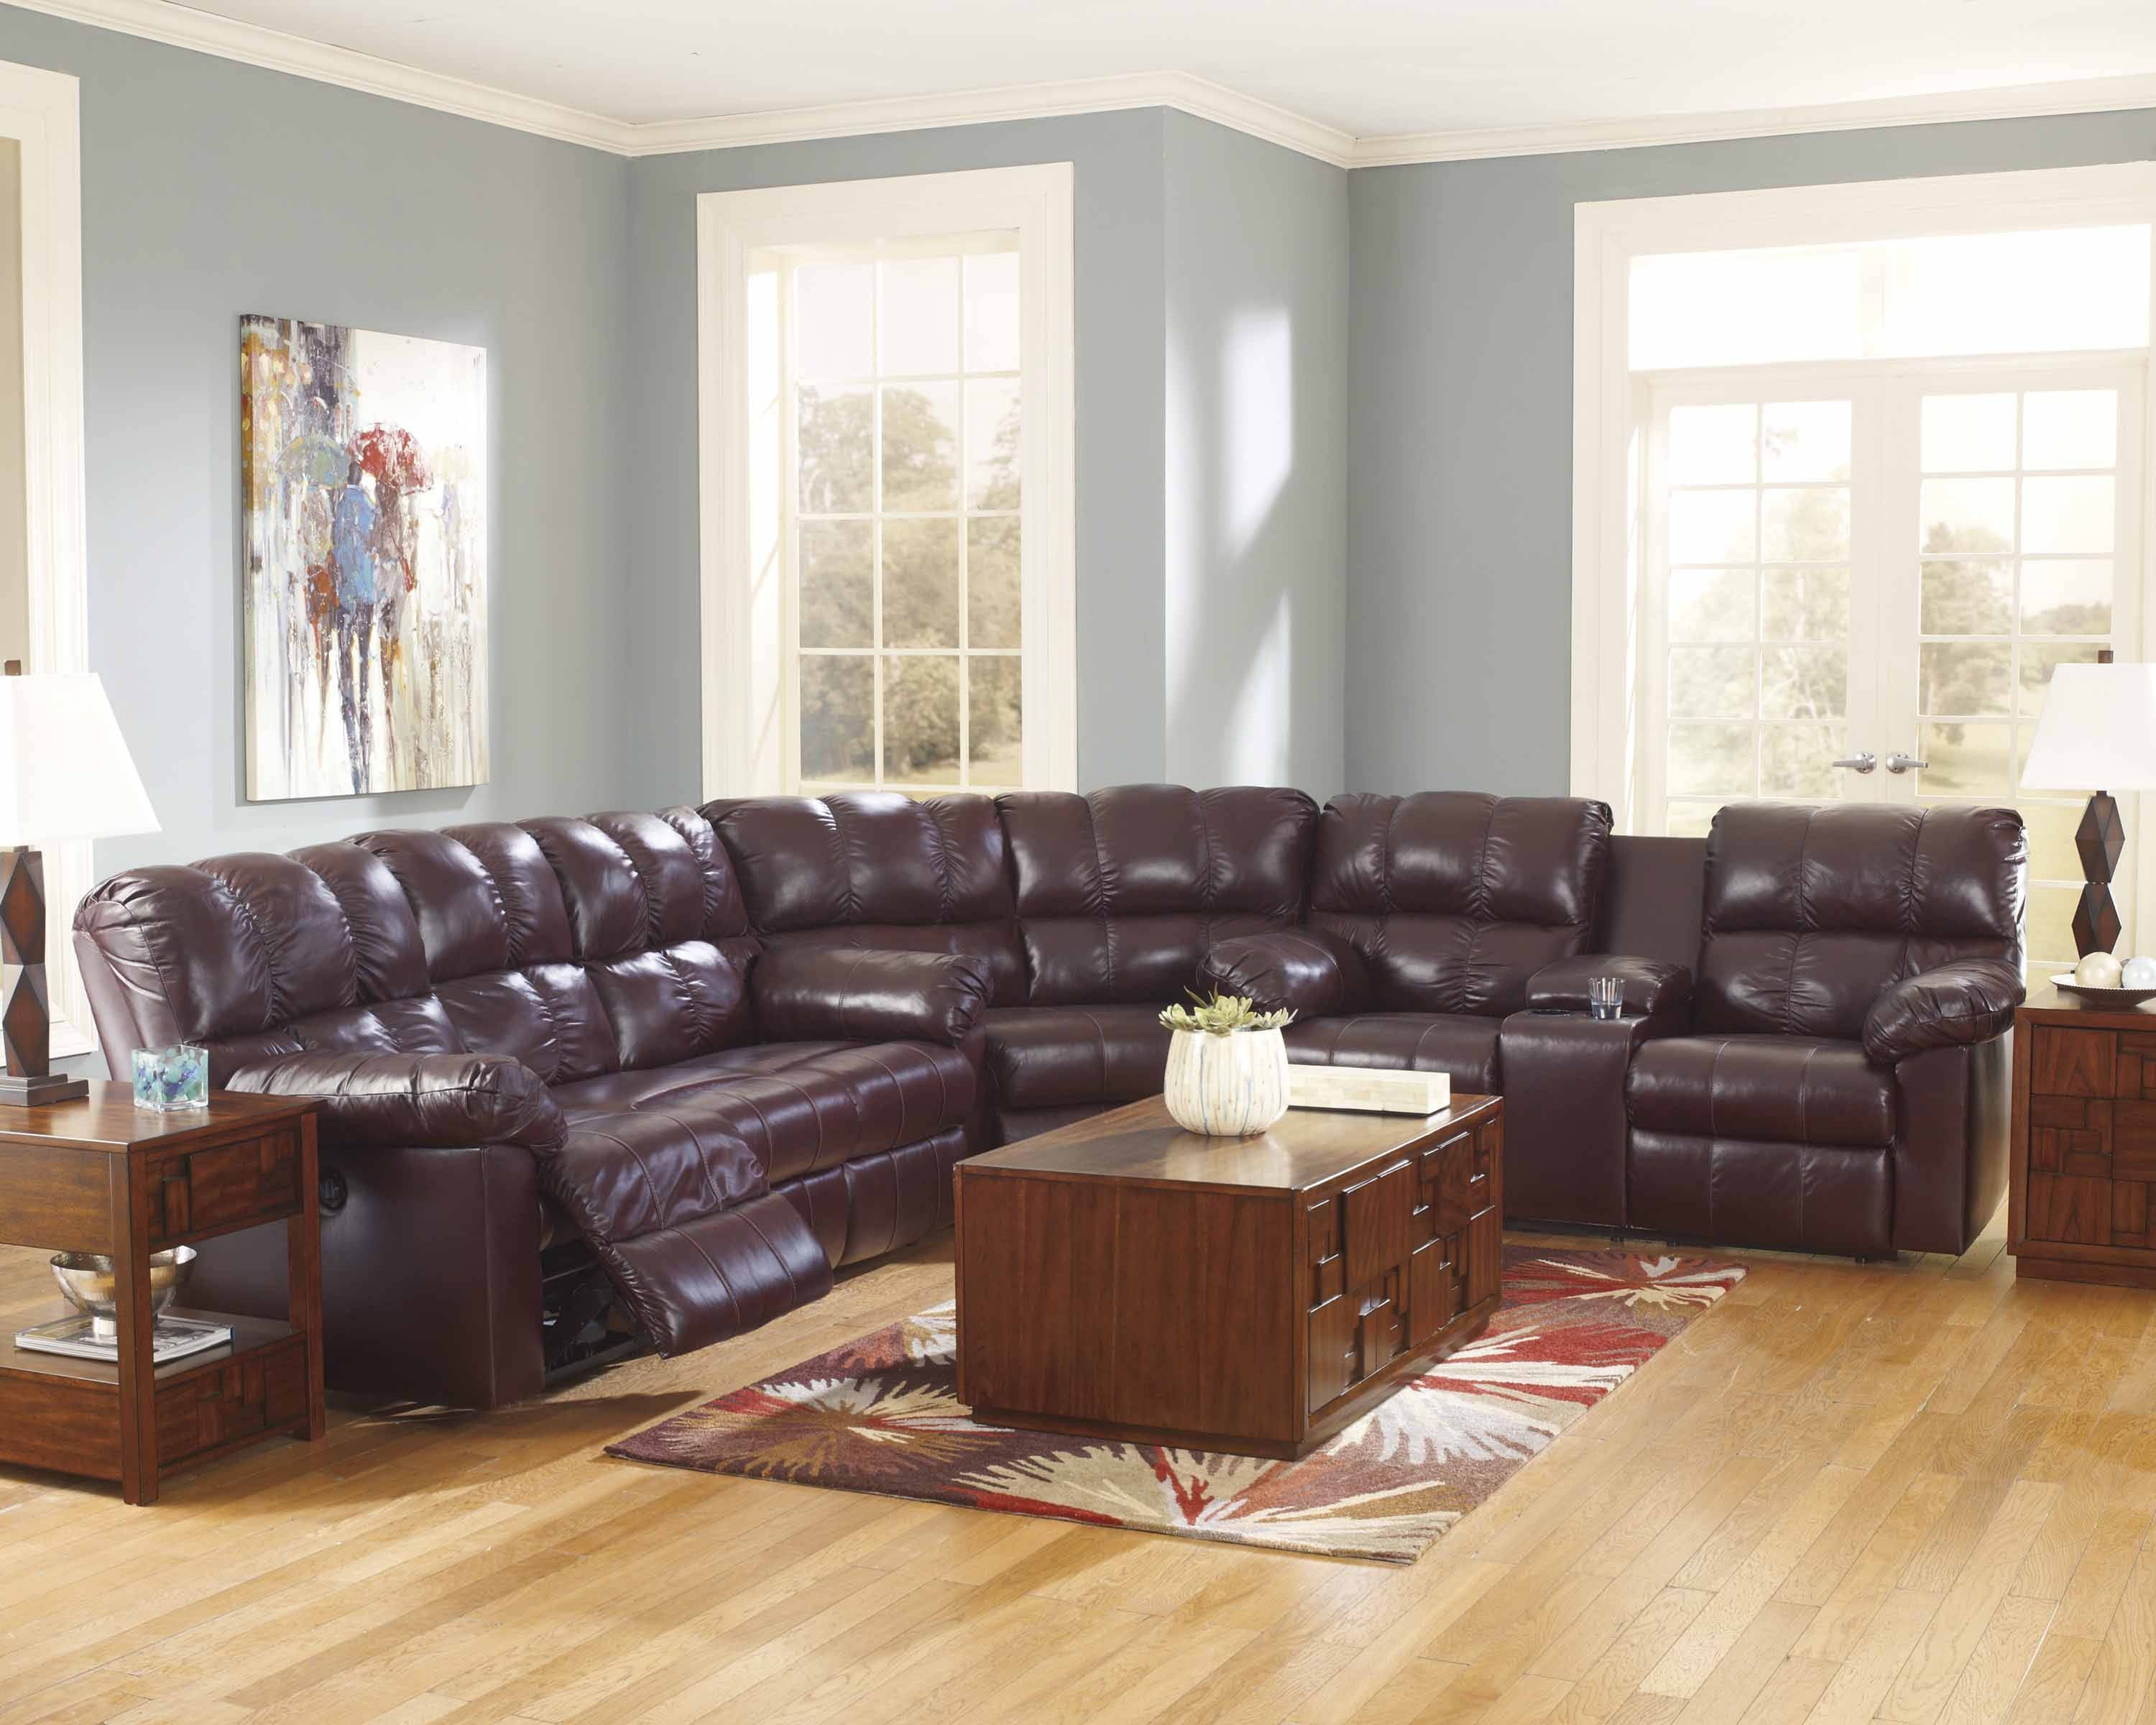 Kennard Power Reclining Sectional Sofa In Burgundy 290 regarding Burgundy Sectional Sofas (Image 6 of 15)